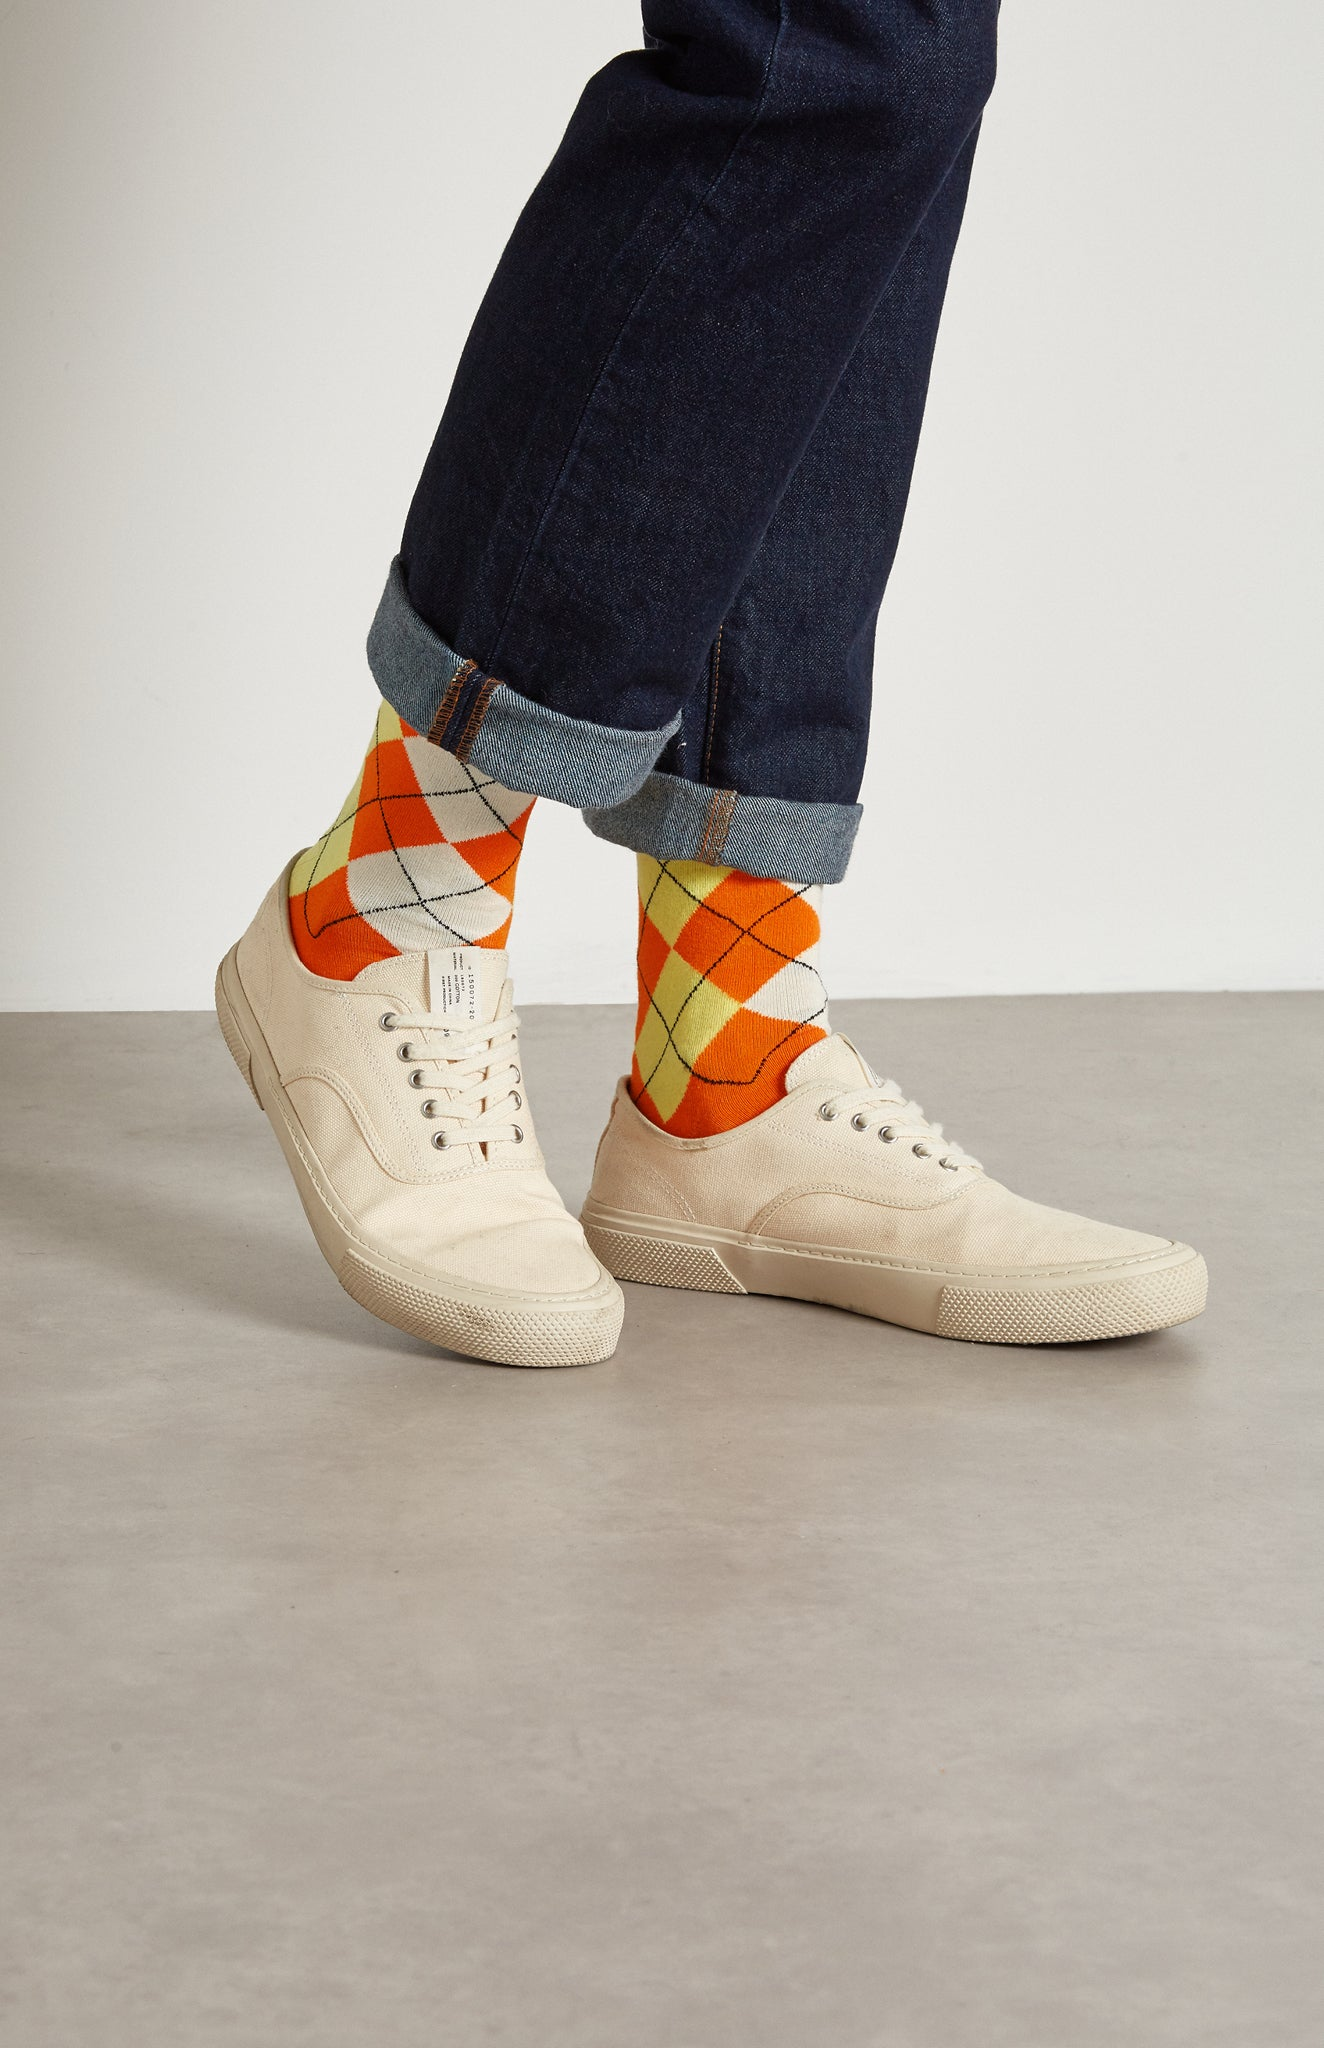 Pringle reissued Men's Classic Argyle Socks In Multi Orange